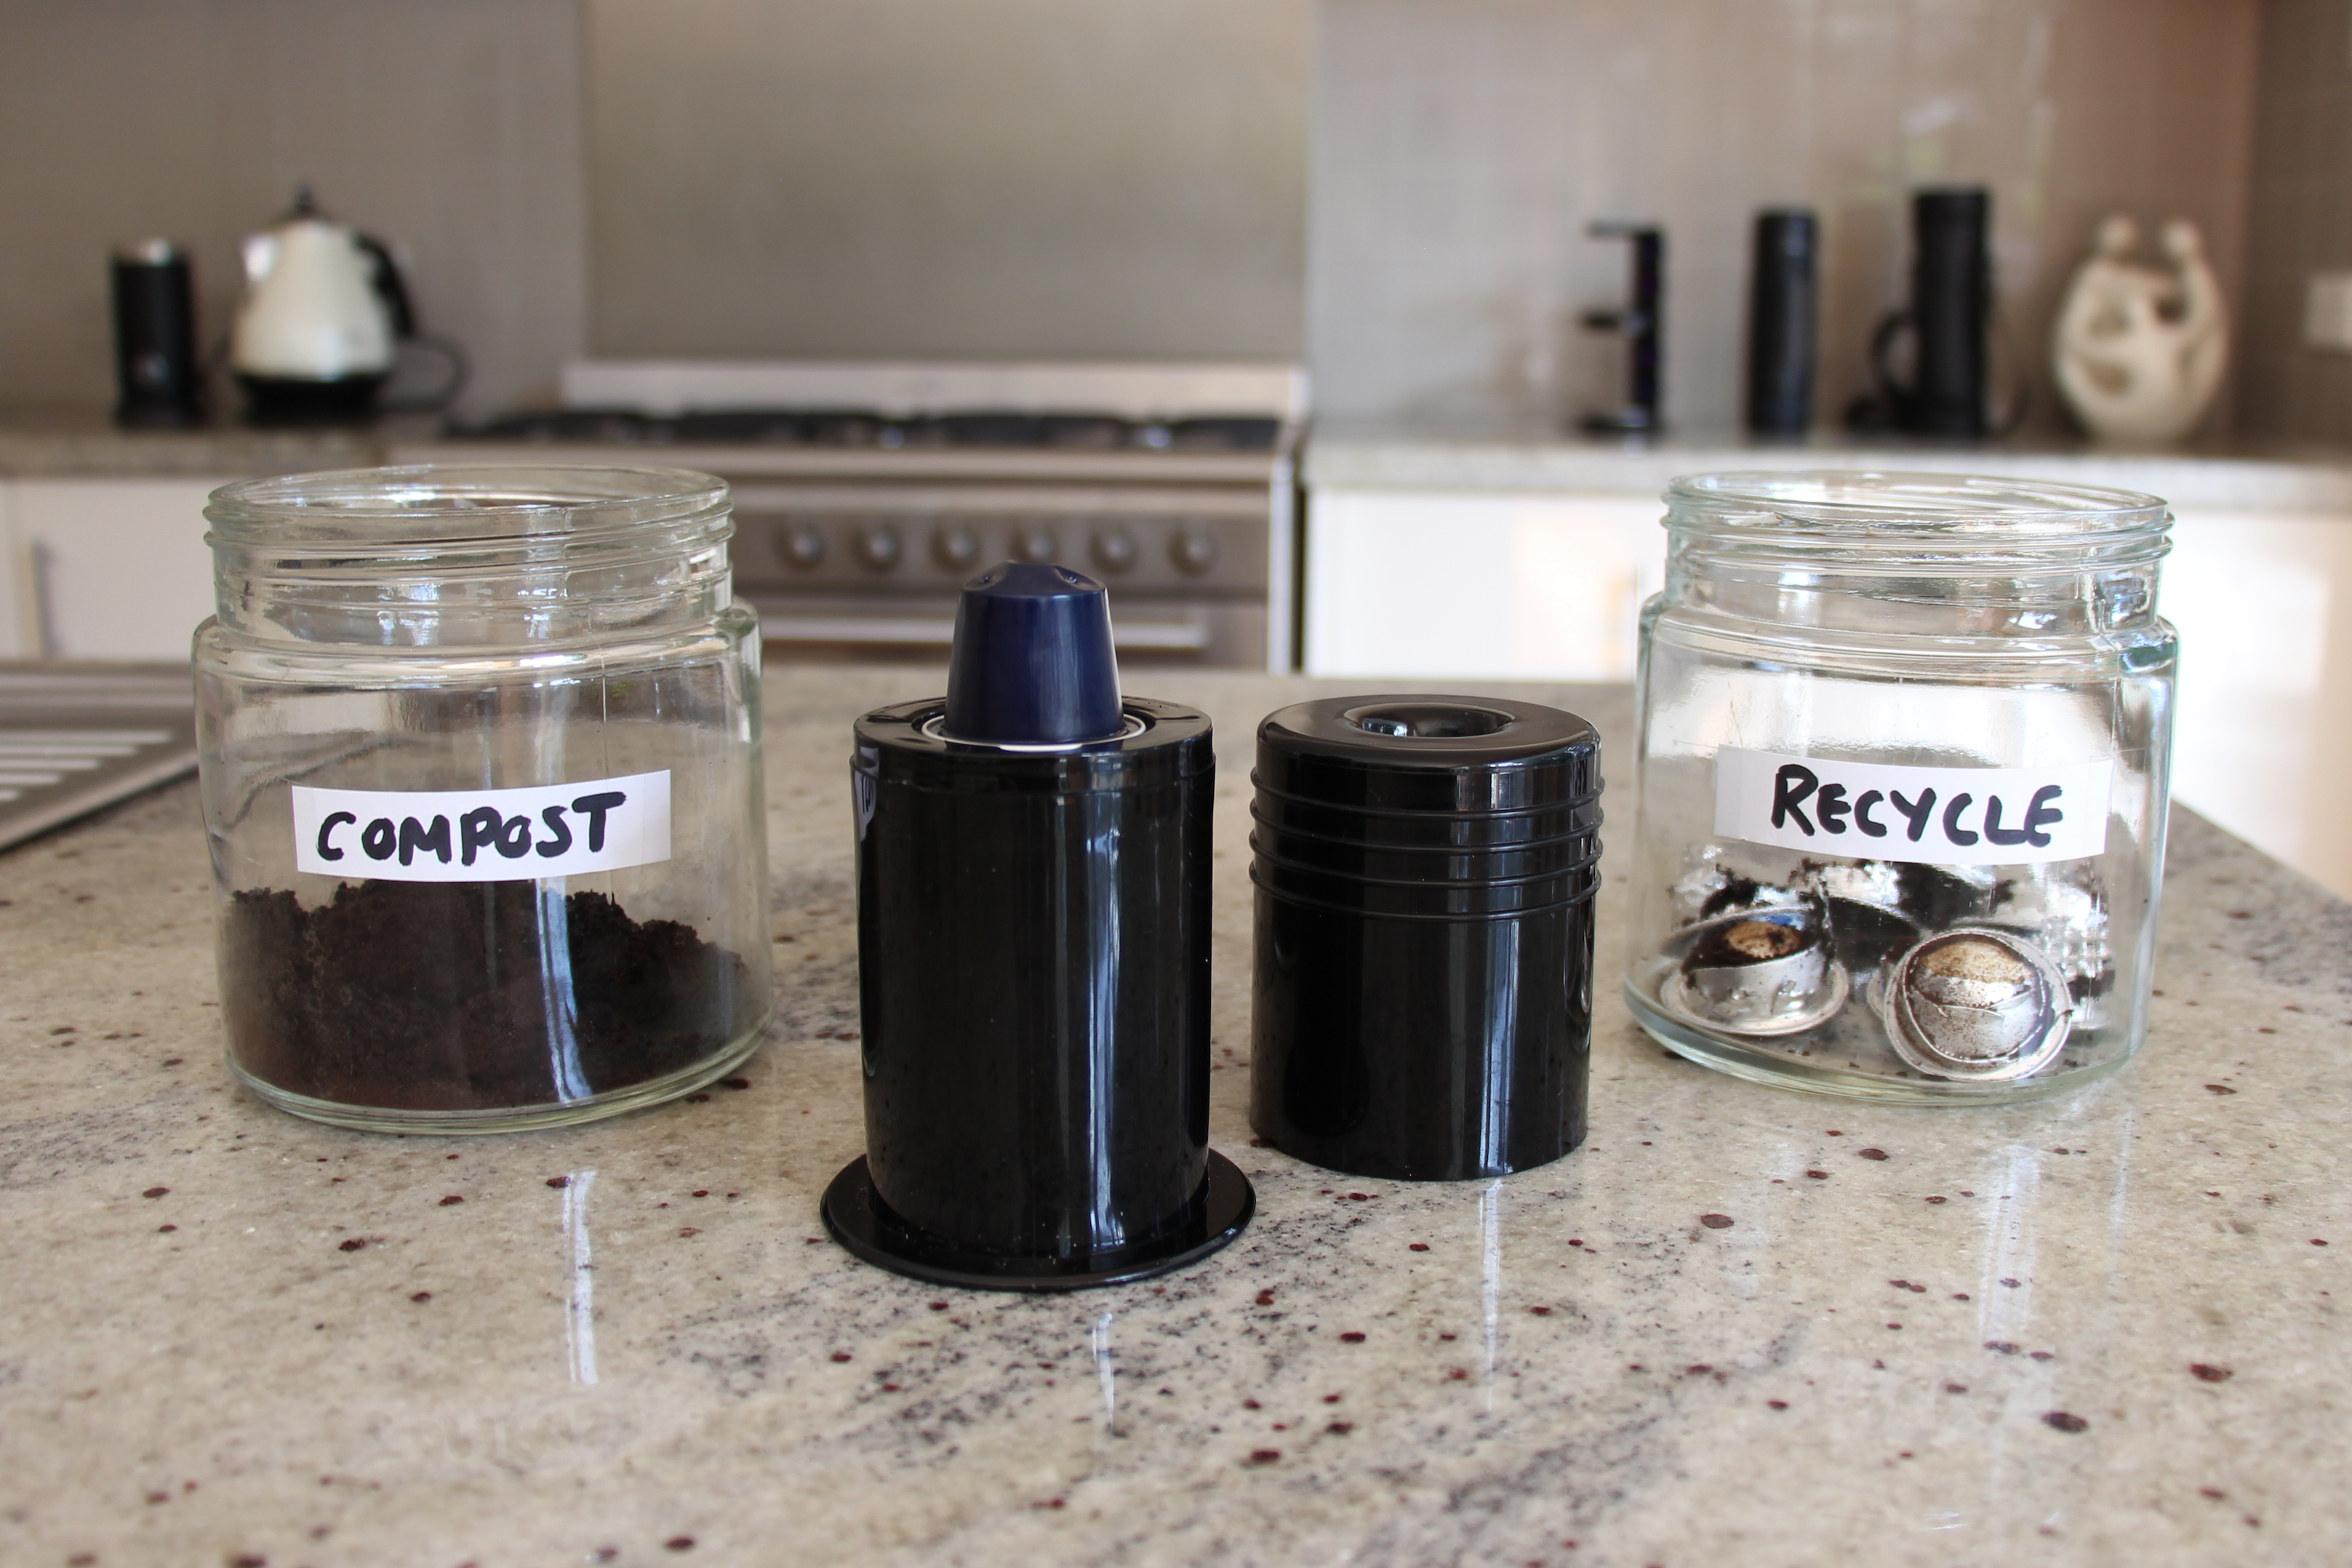 Nespresso Capsule Recycling At Home Ecopress Is Your Easy Personal Nespresso Capsule A Portable Espresso Machine Nespresso Coffee Capsules Coffee Capsules